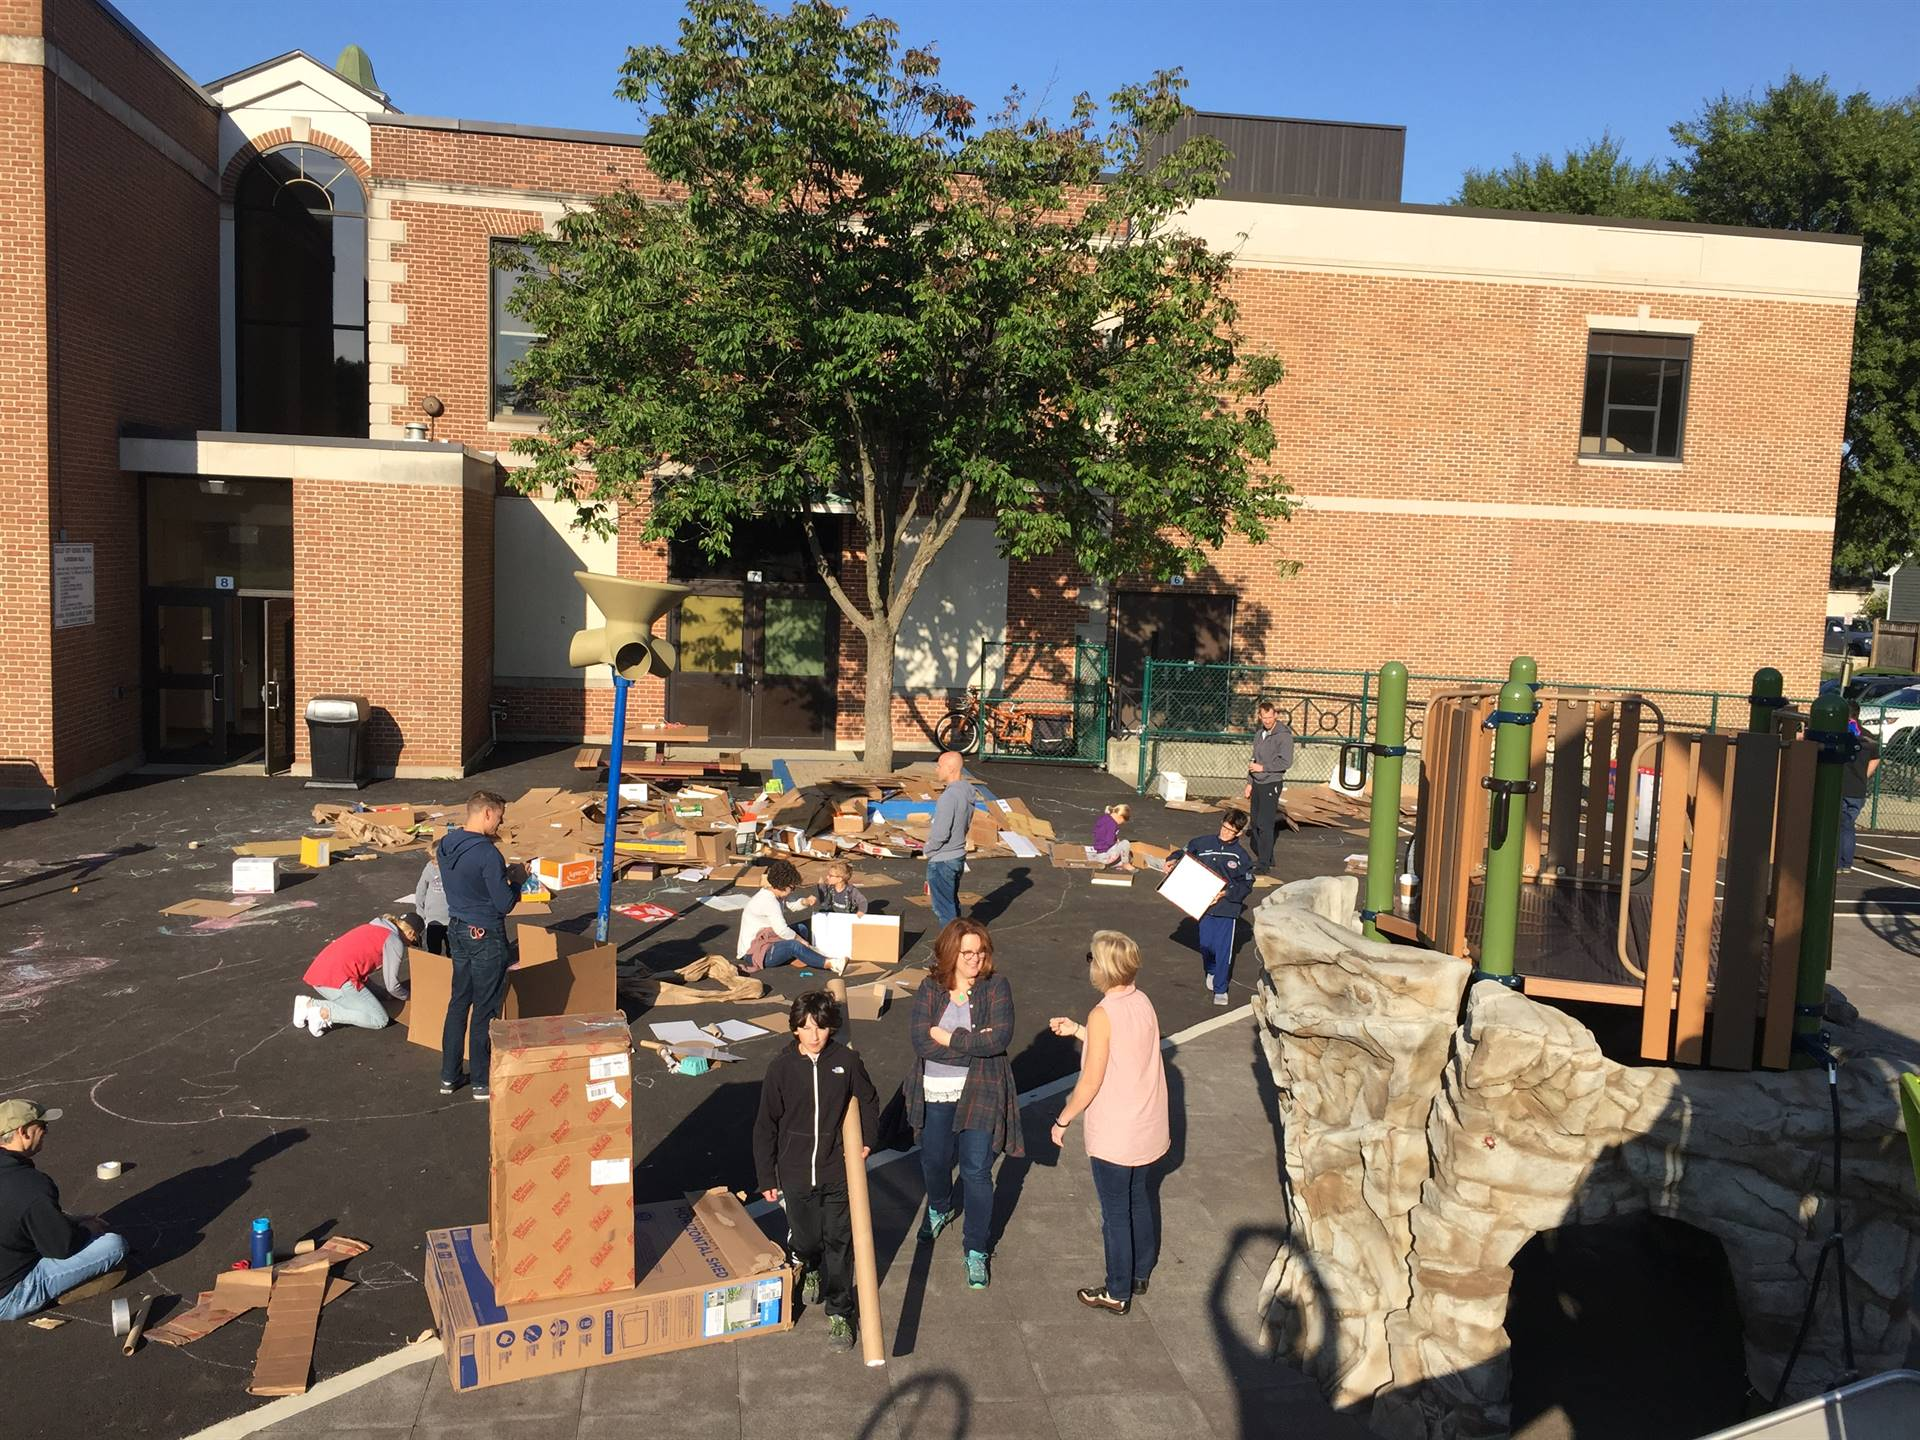 Over 150 Cassingham community members participated in the Cardboard Challenge on the beautiful morni